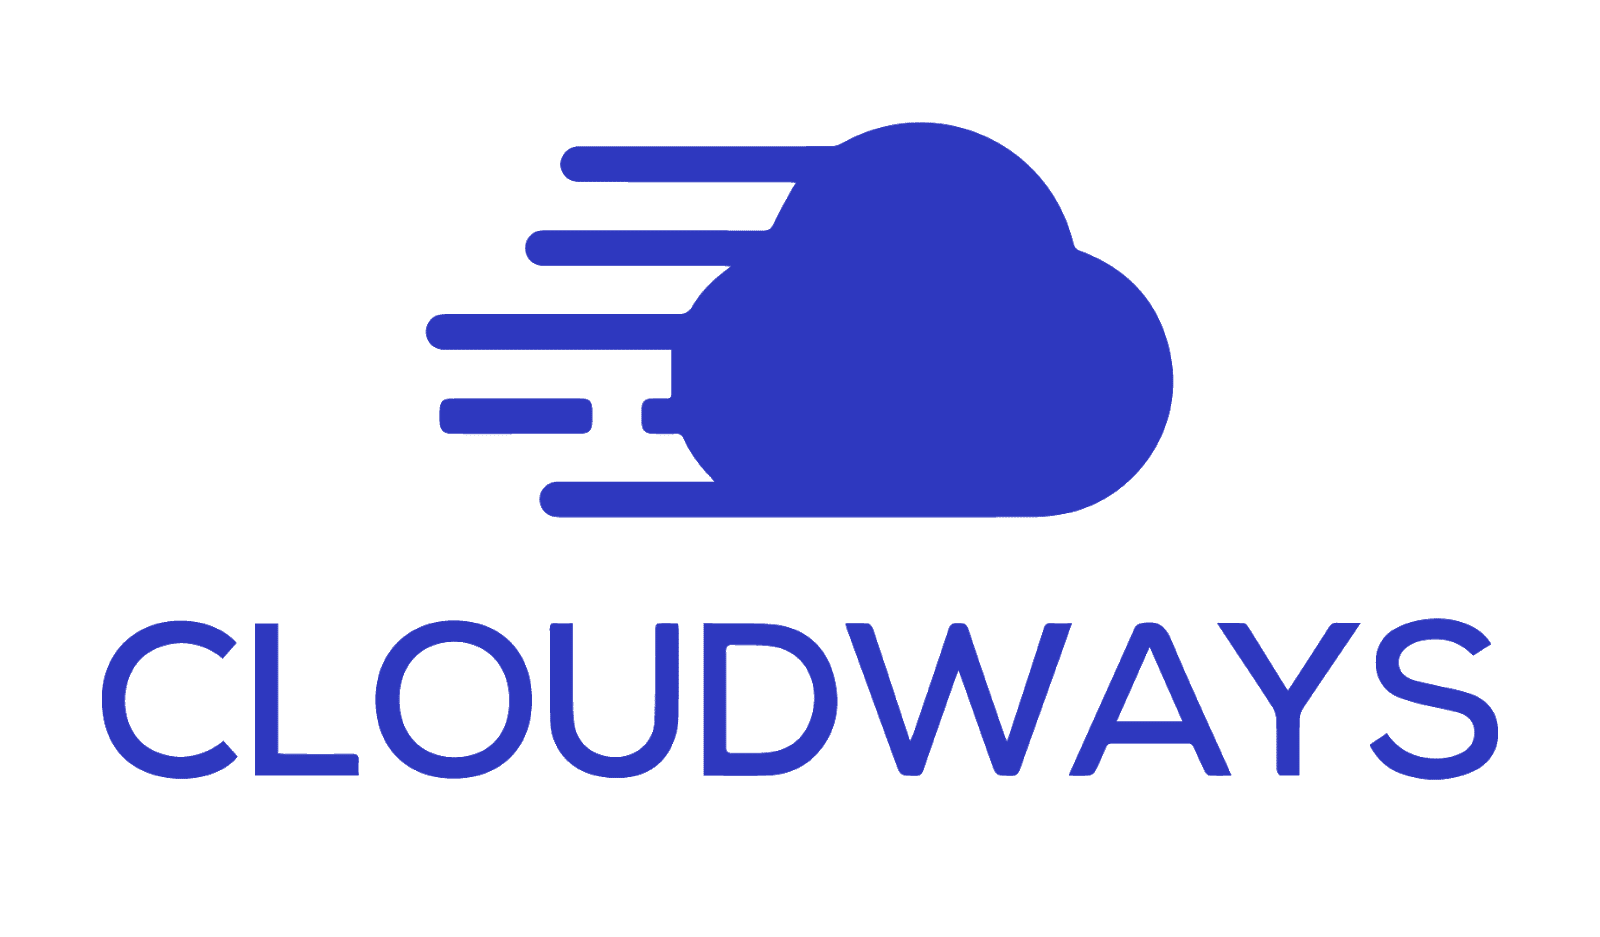 Cloudways is already a great dedicated hosting provider